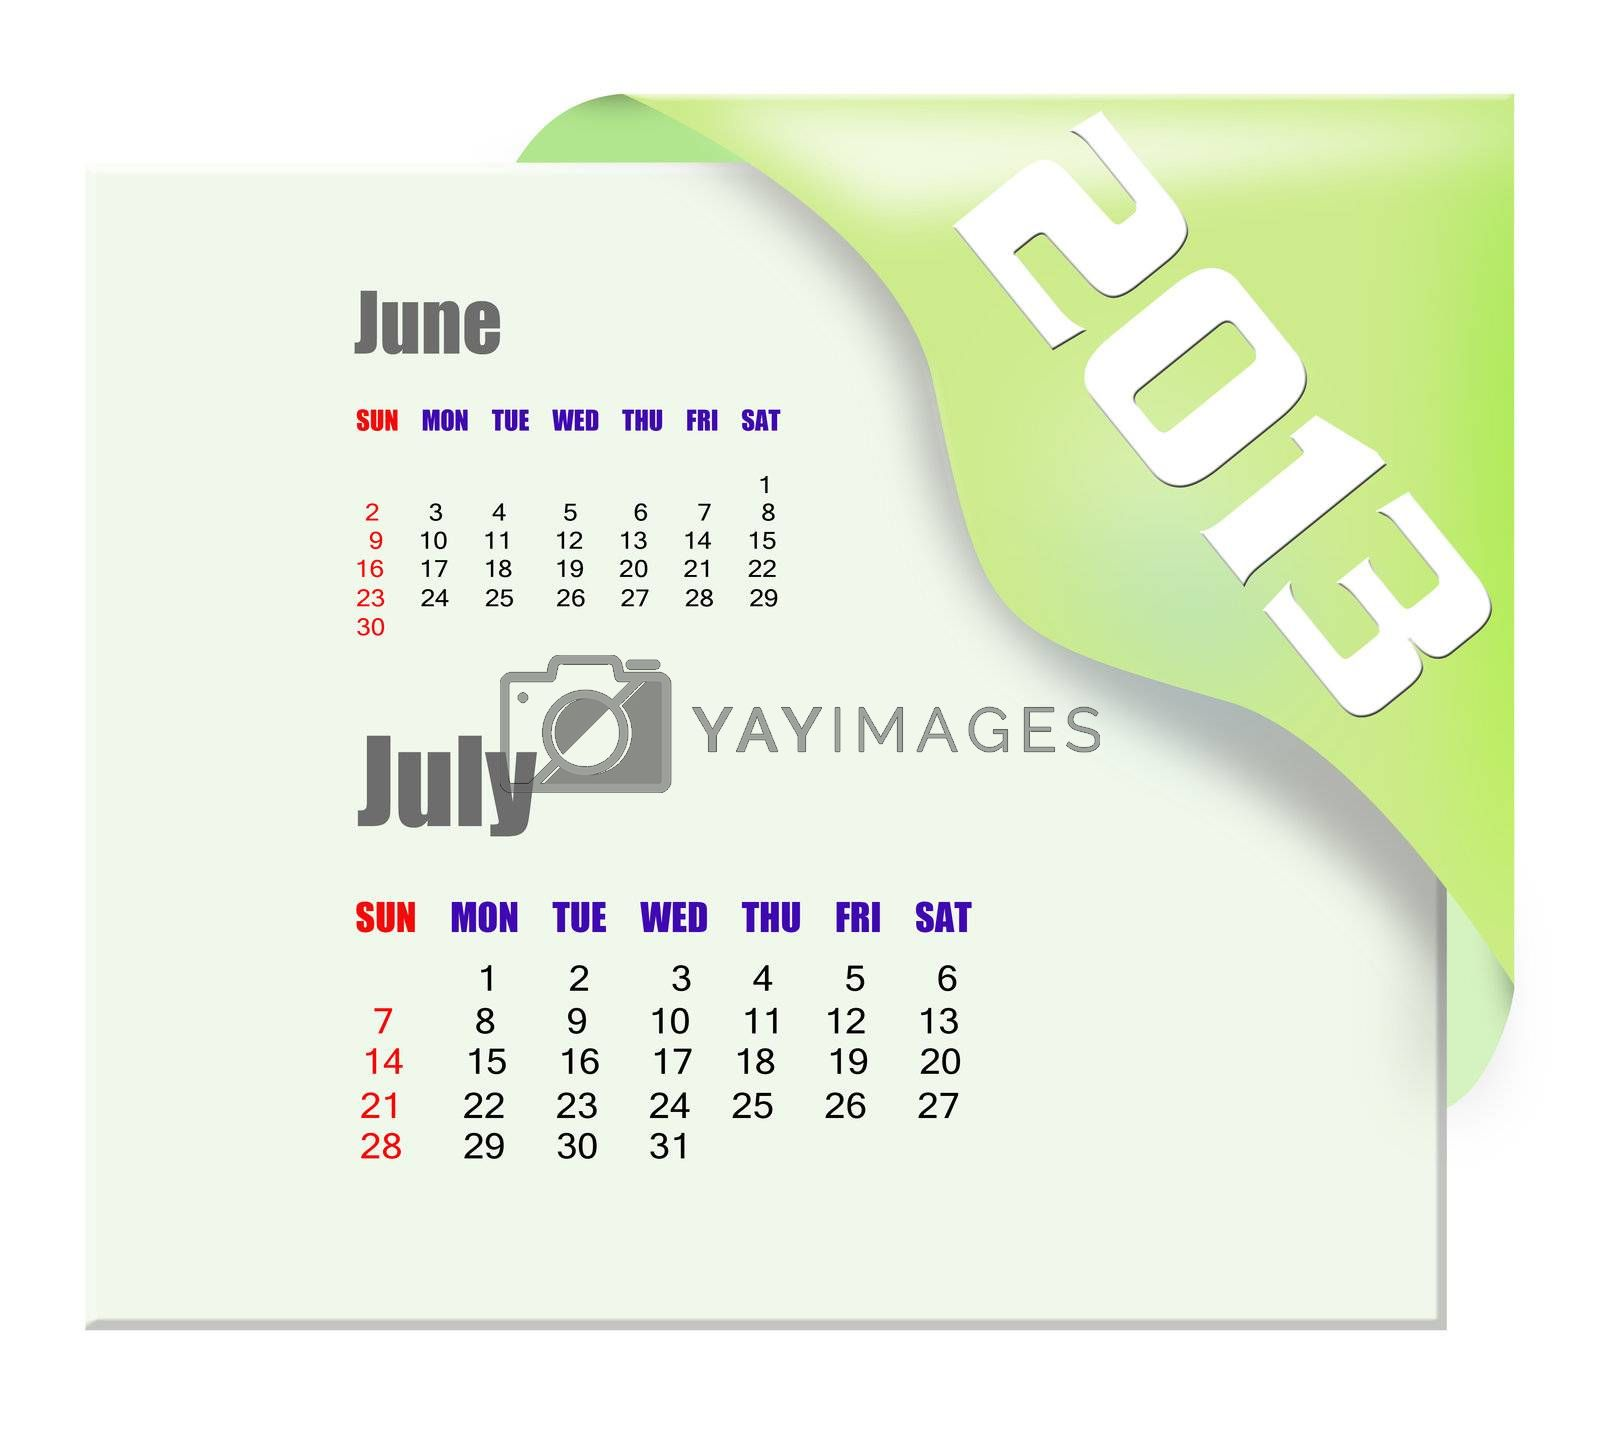 2013 July calendar  by payphoto